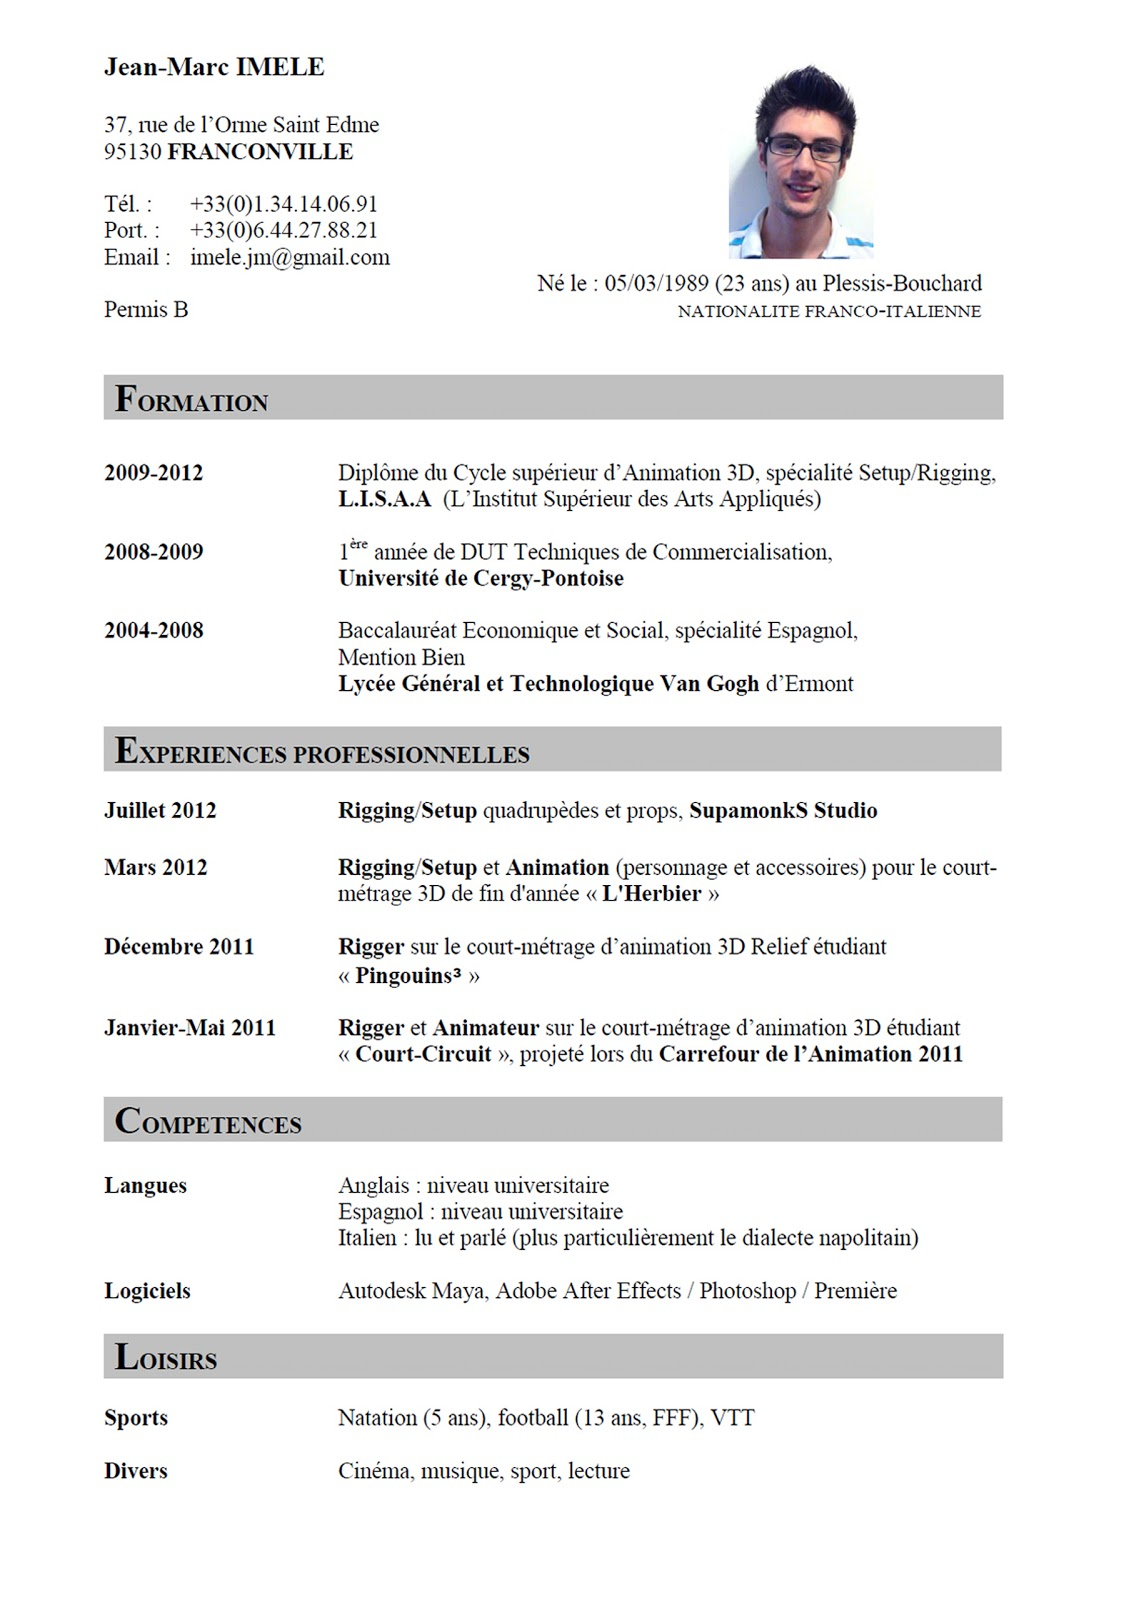 Curriculum Vitae Curriculum Vitae En Francais. Cover Letter Example Text. Resume Free Software. Receptionist Cover Letter With Retail Experience. Sample Excuse Letter For Not Wearing Uniform Due To Pregnancy. Letter Of Resignation Sample Part Time Job. Curriculum Vitae Formato Basico Pdf. General Cover Letter Recent Graduate. Letter Template Border